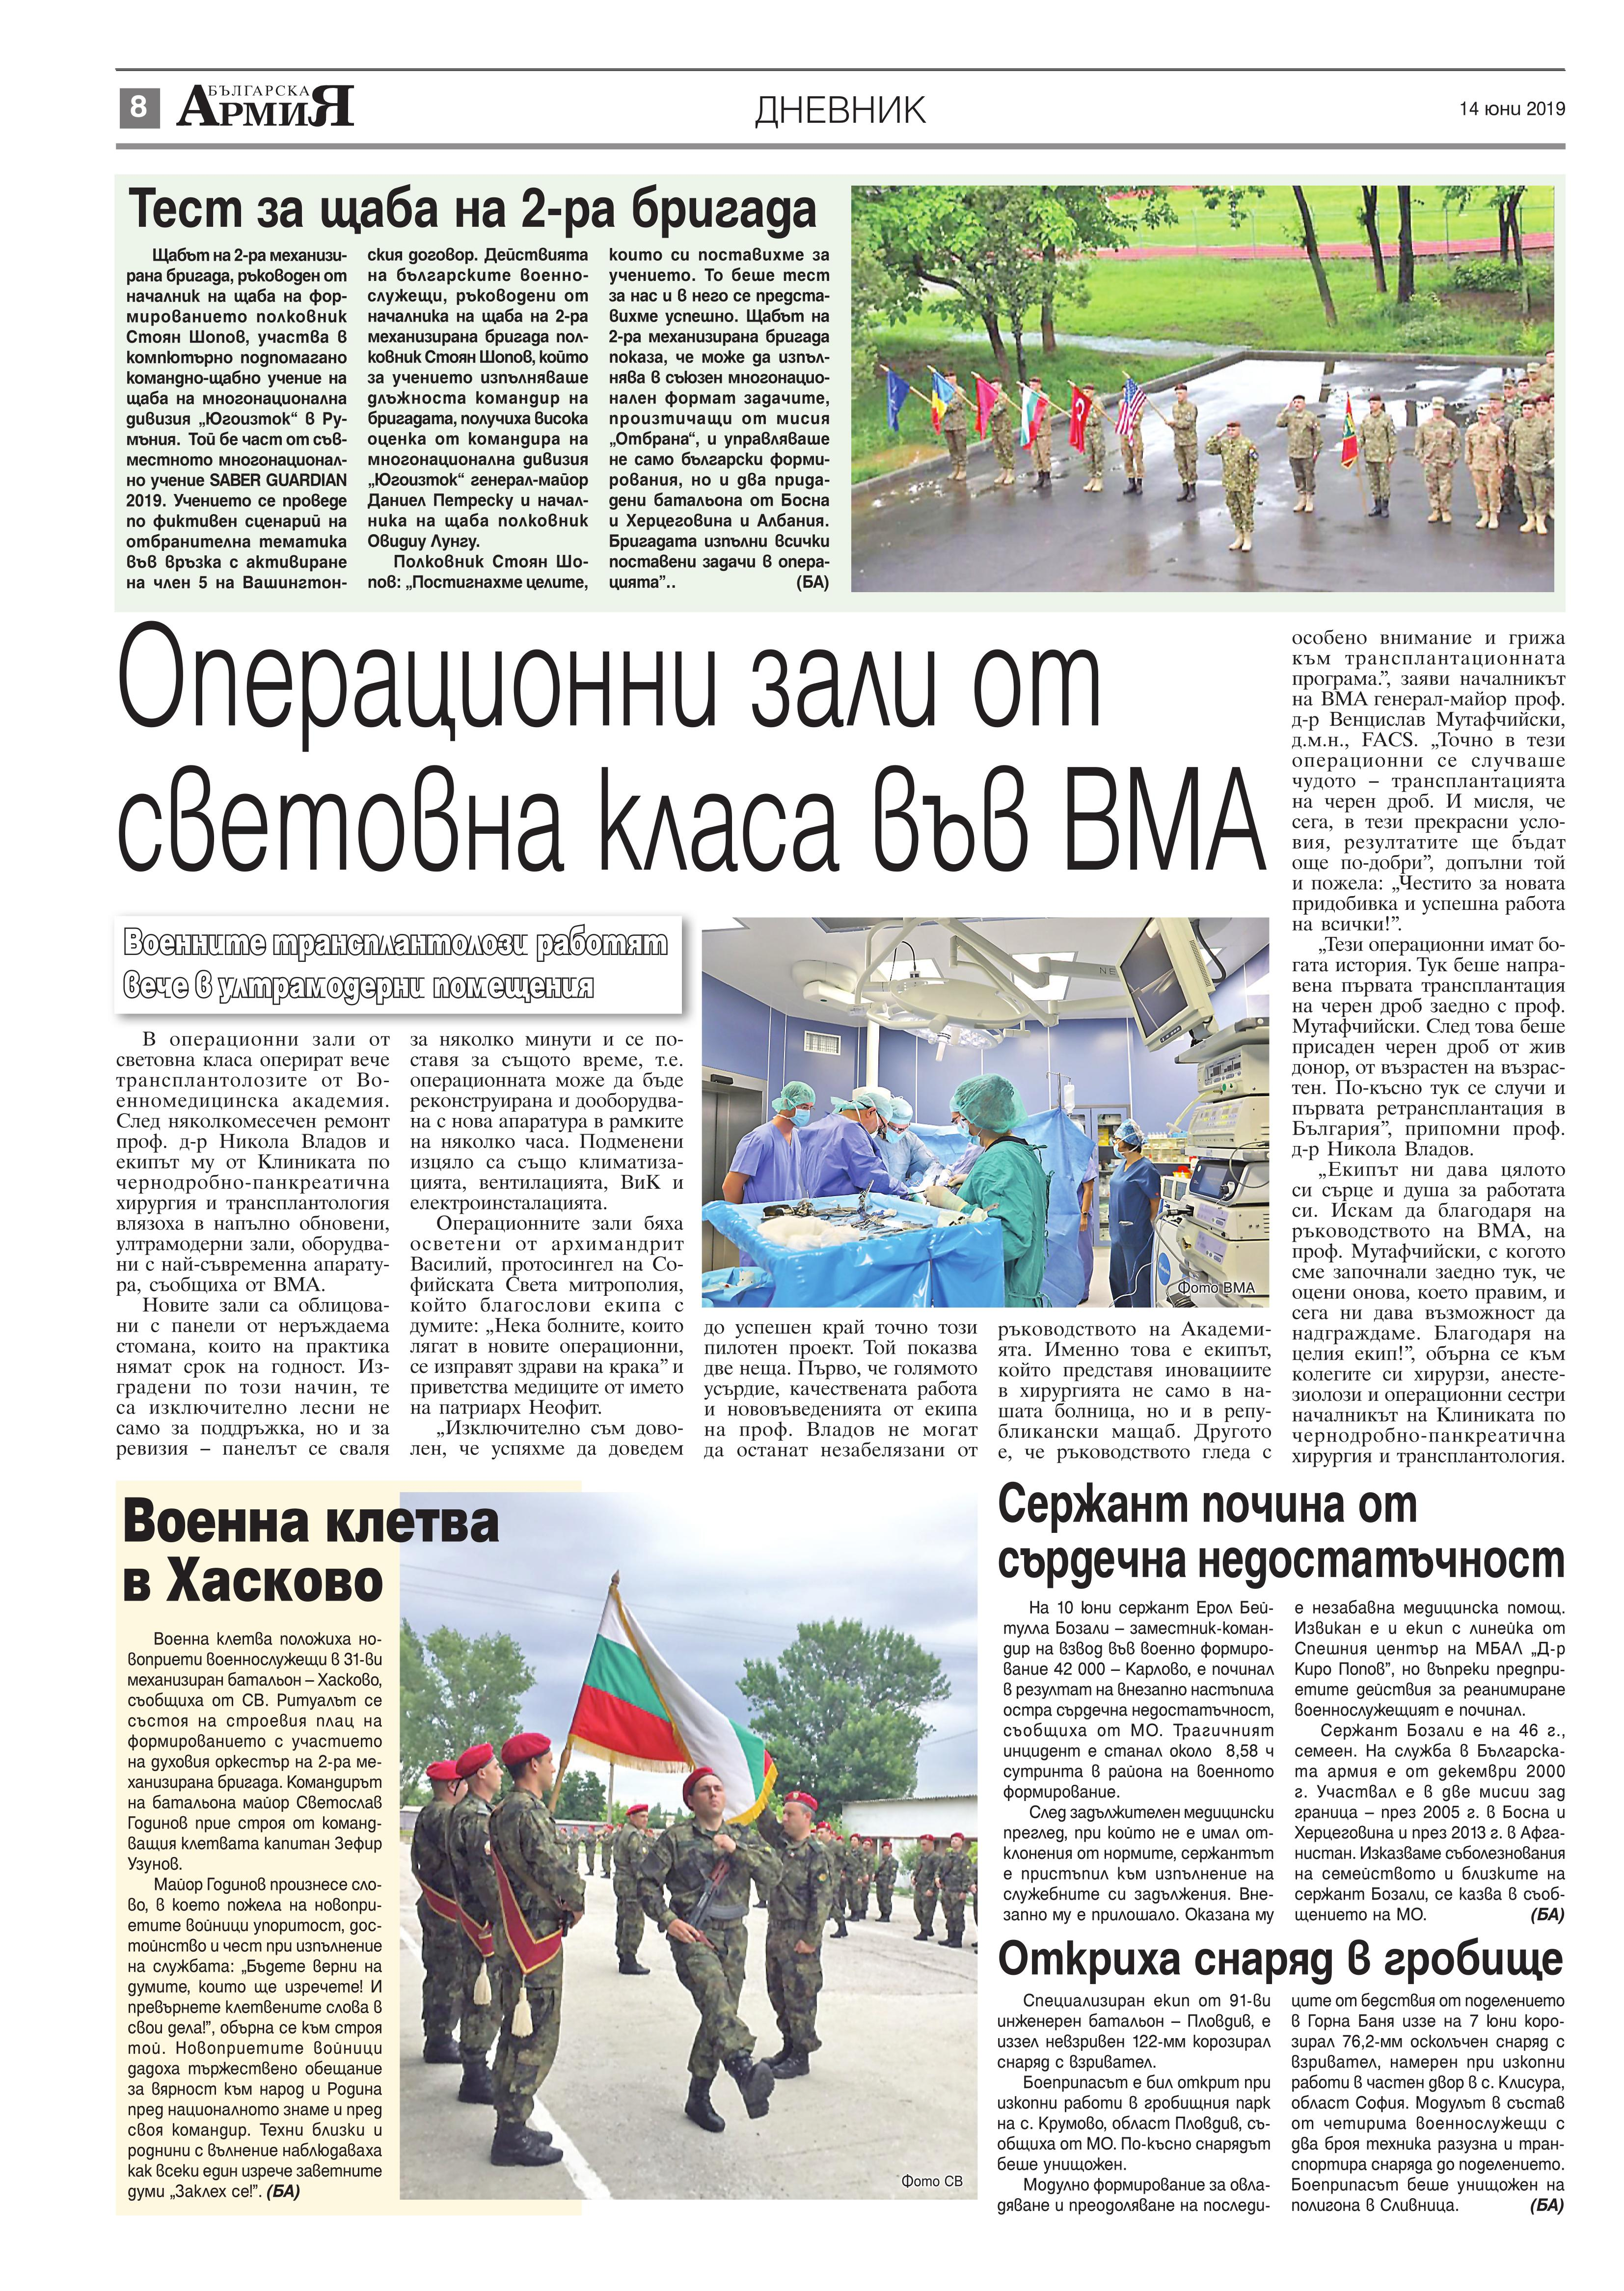 https://armymedia.bg/wp-content/uploads/2015/06/08.page1_-96.jpg